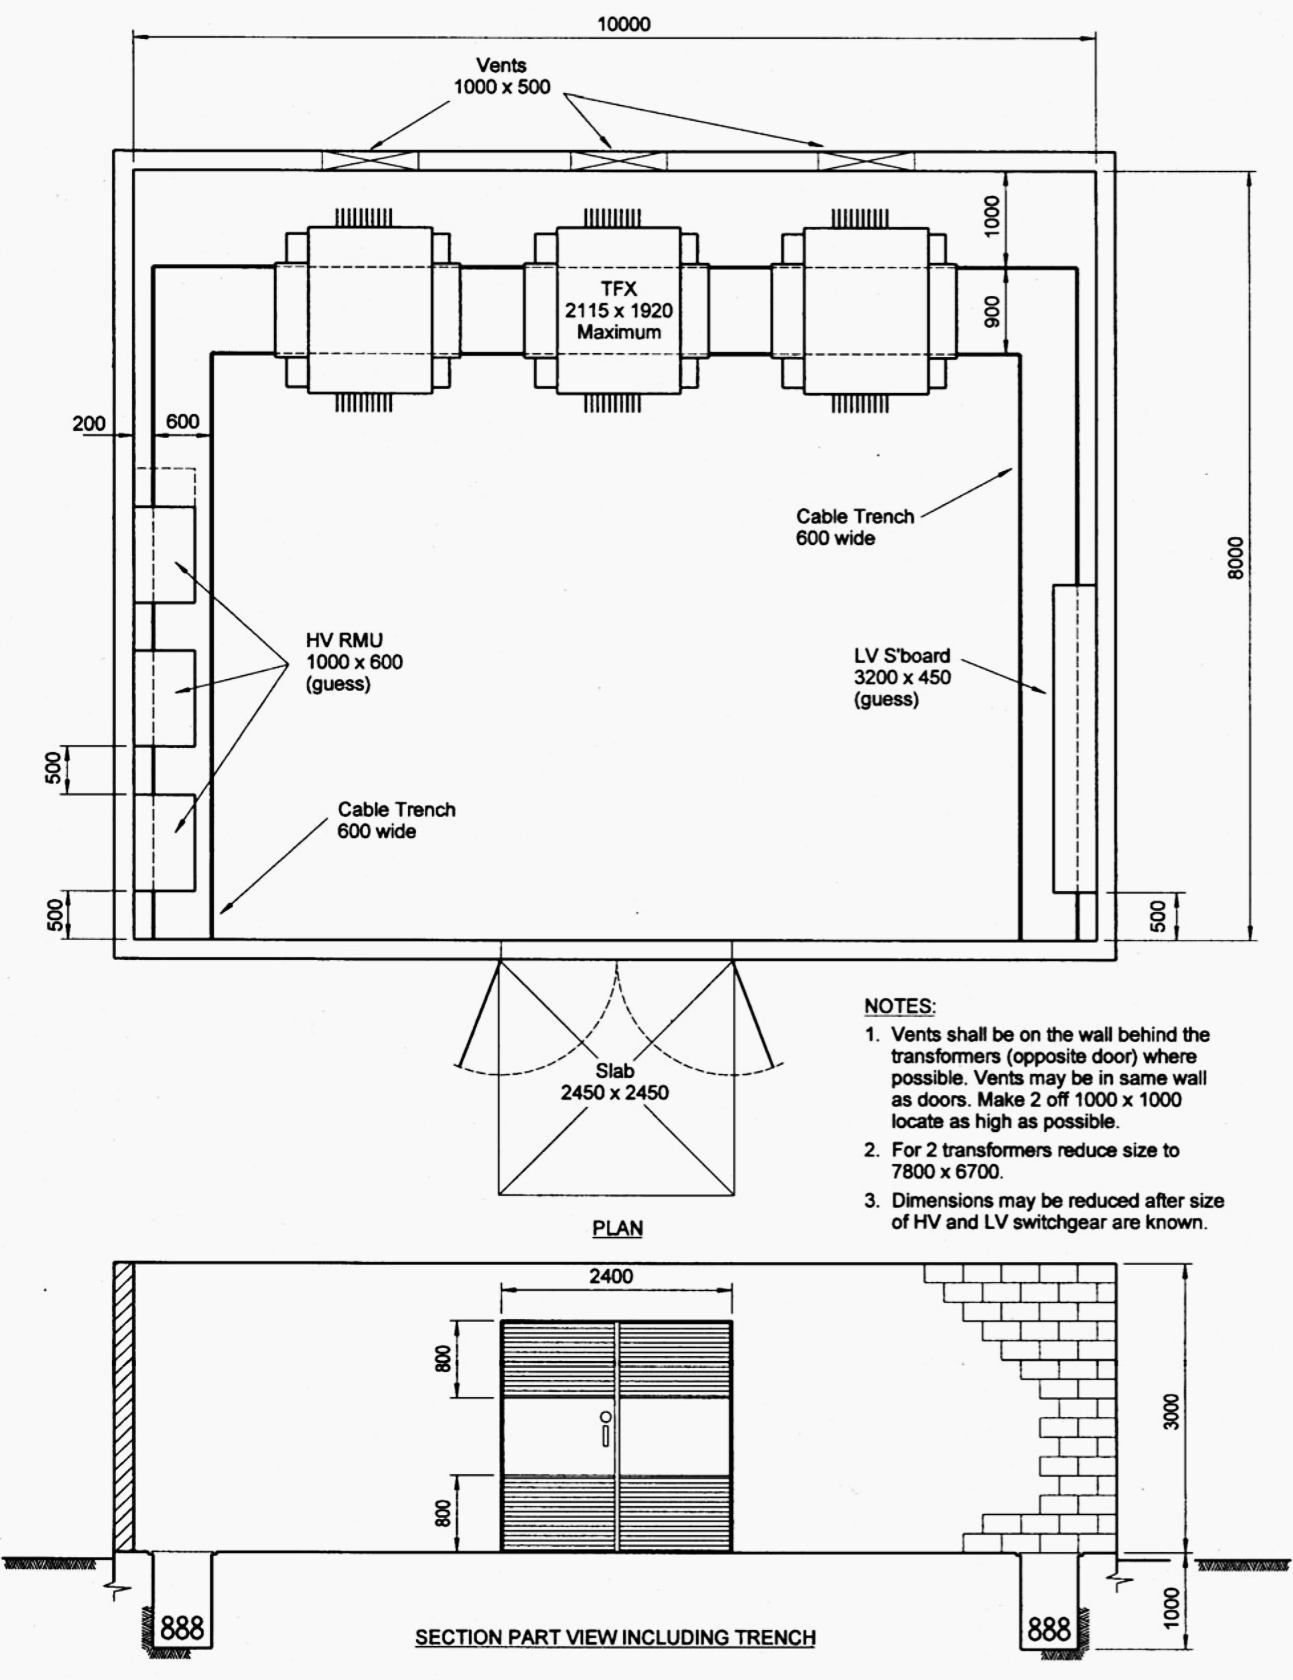 indoor distribution substation layout with 3 transformers. Black Bedroom Furniture Sets. Home Design Ideas